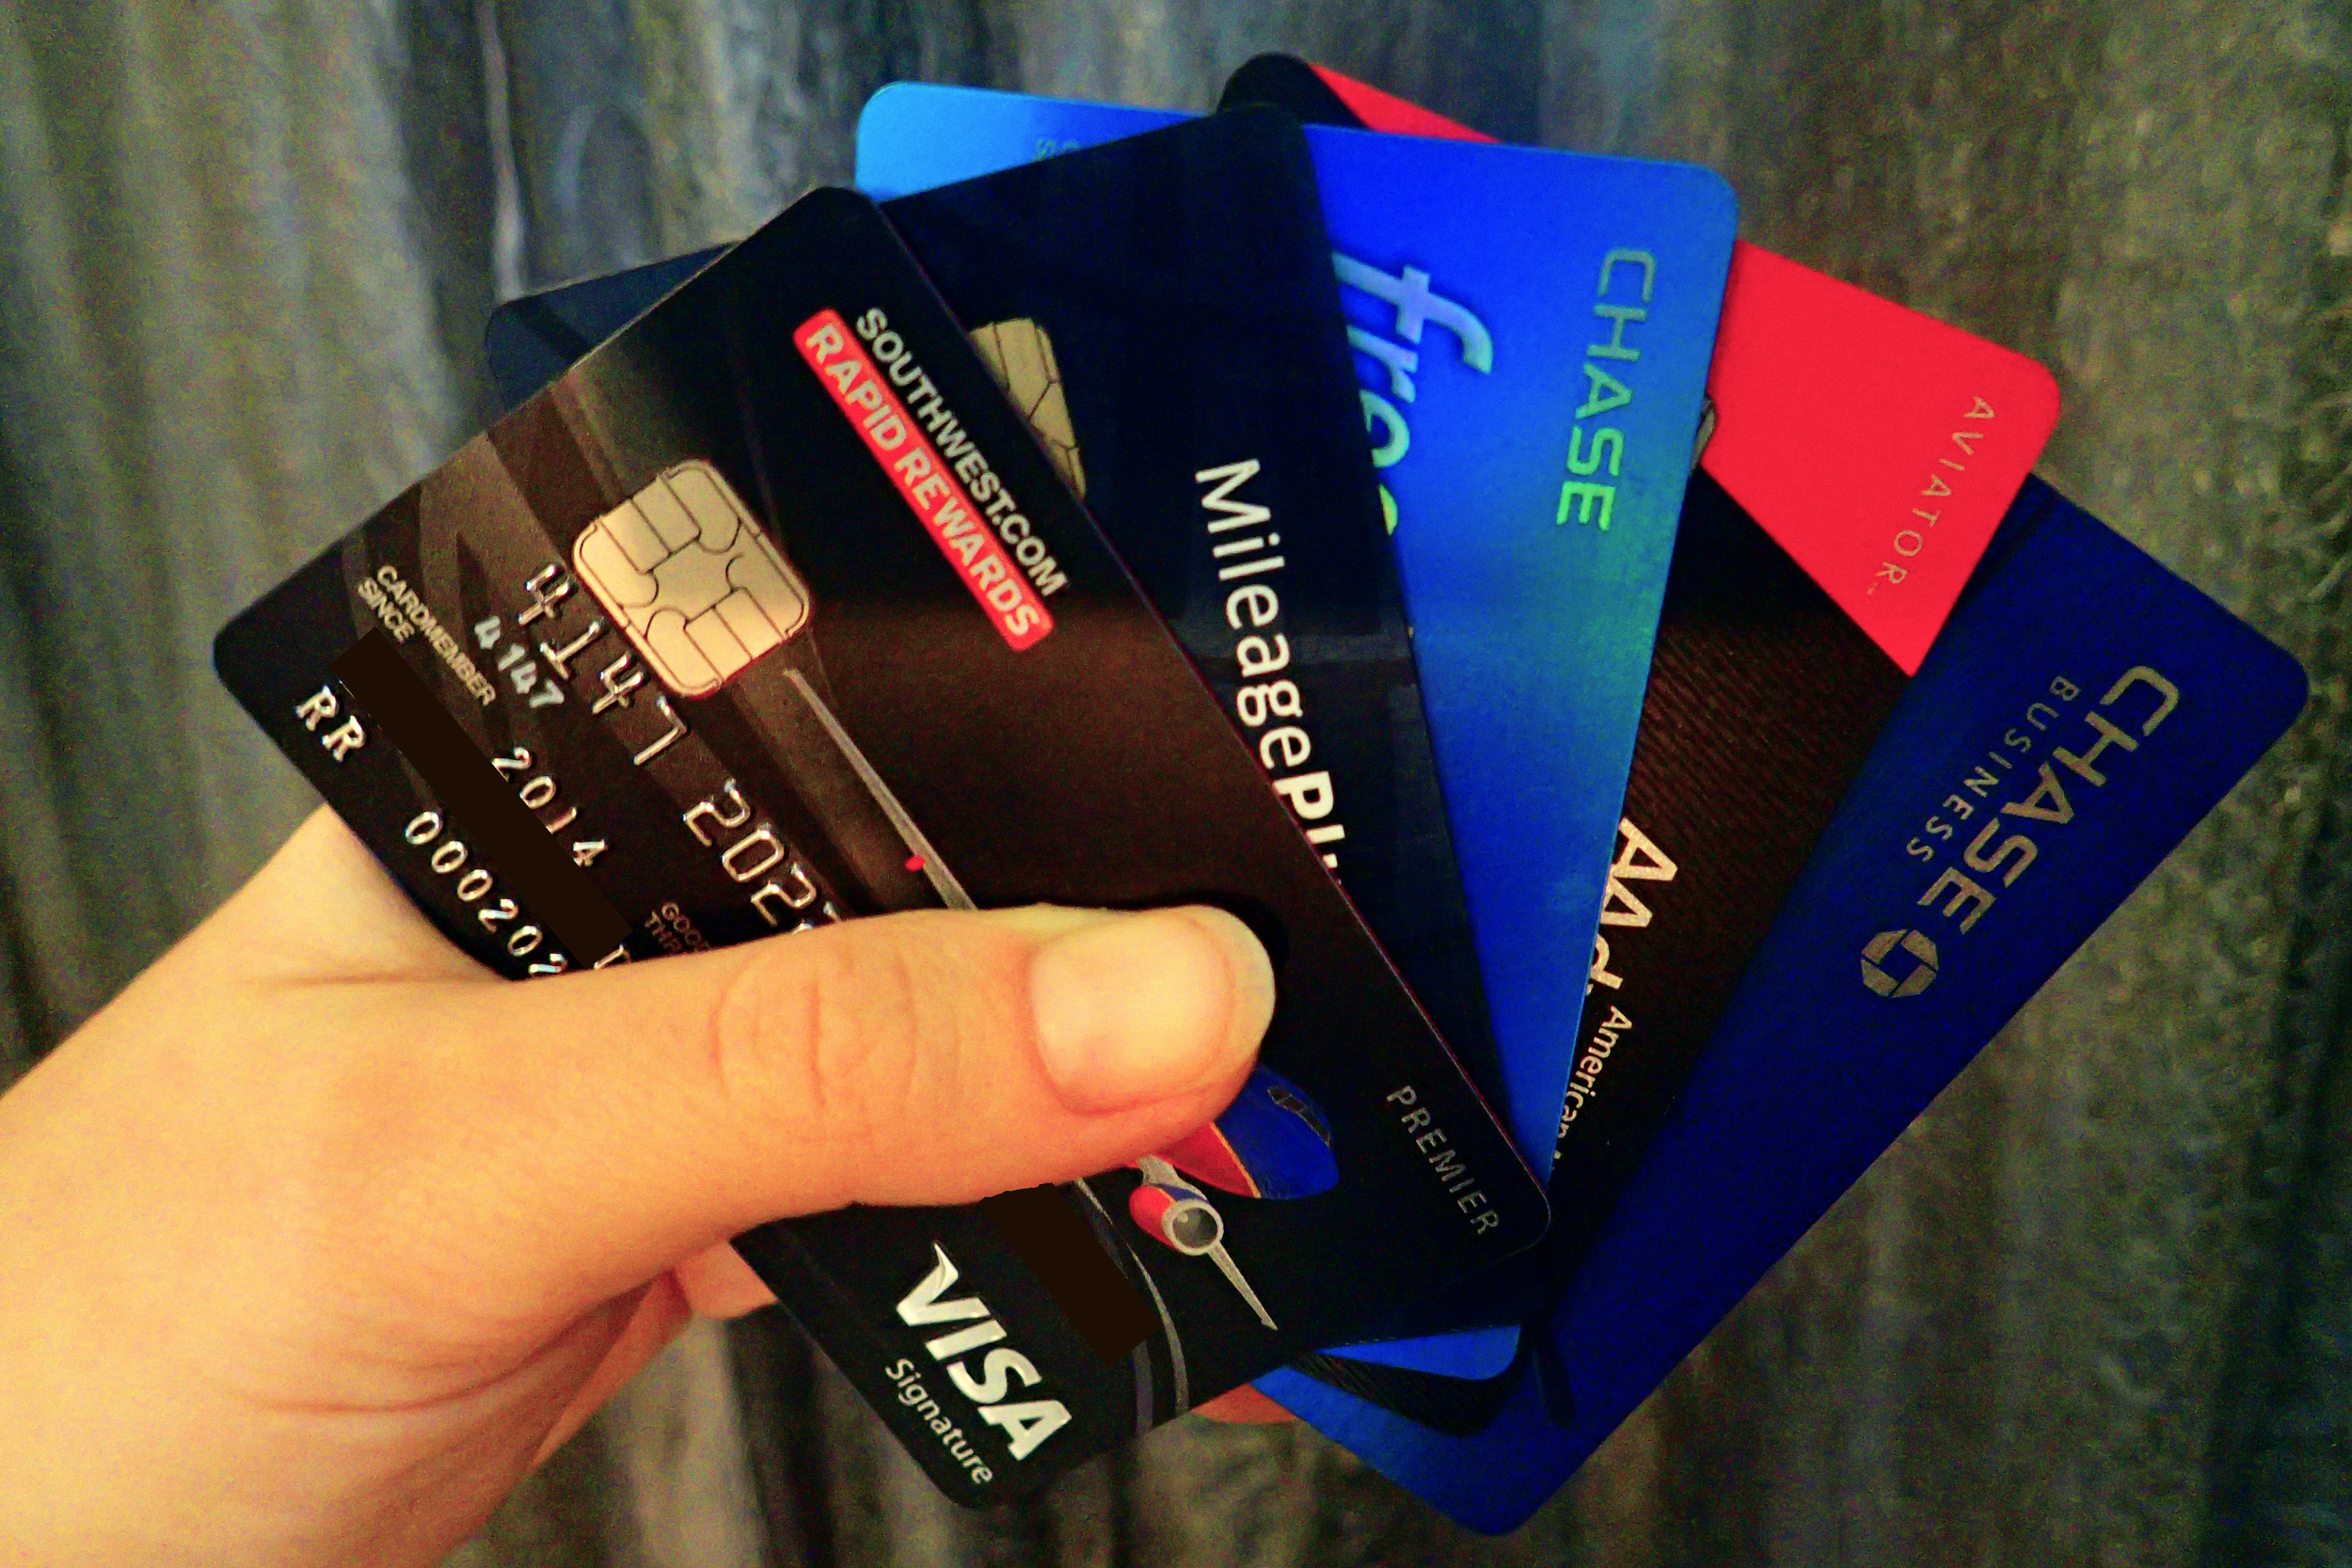 Some of the miles-earning credit cards I've had in my wallet